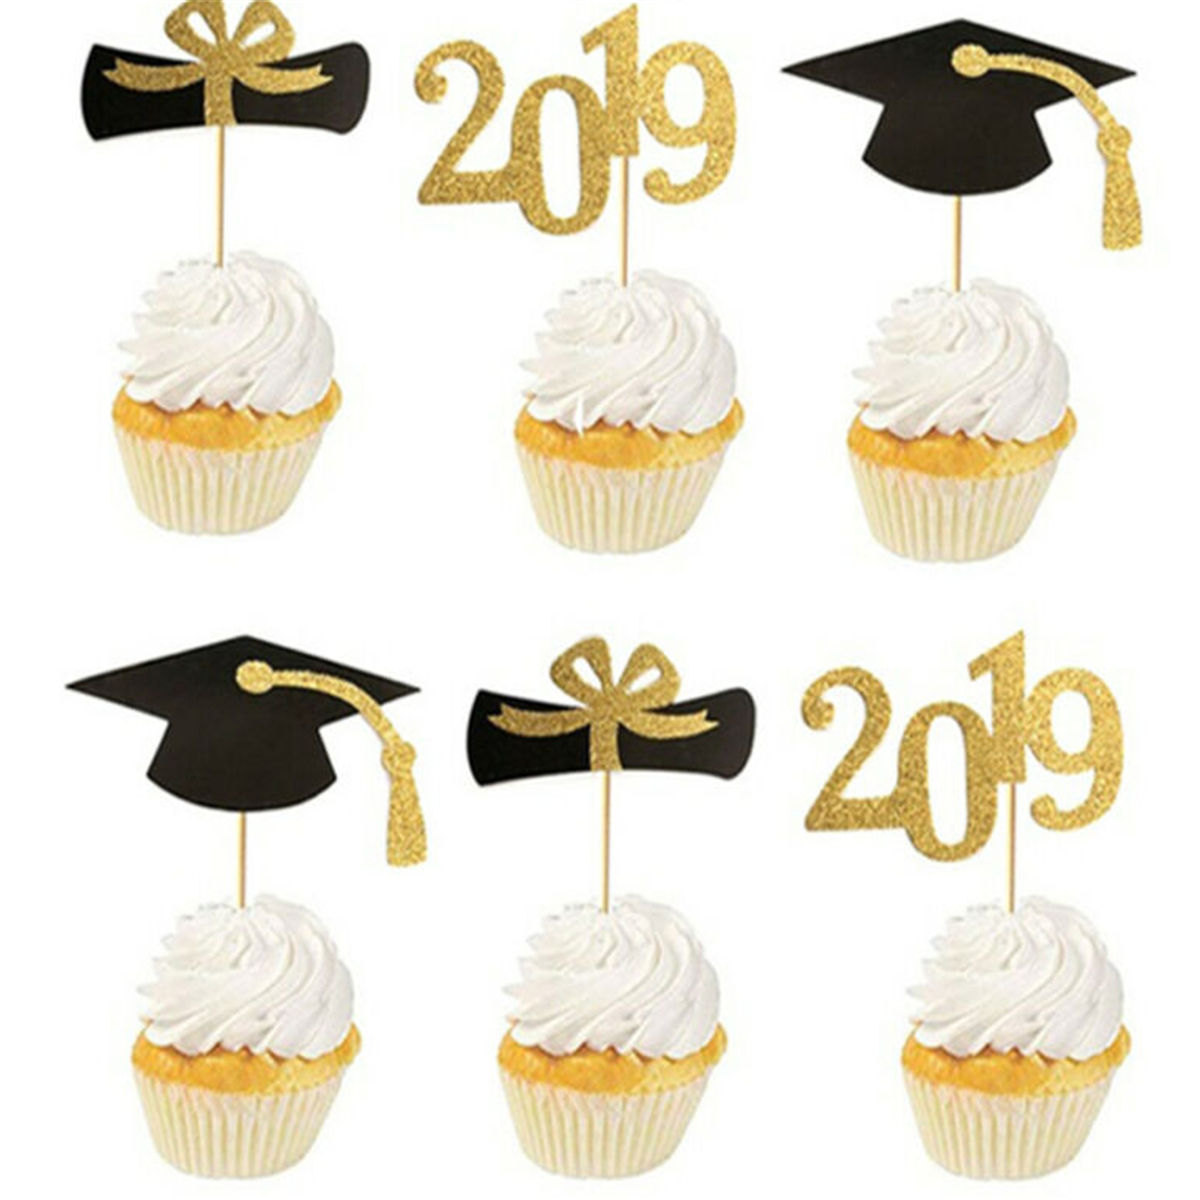 Class of 2019 Edible Cupcake Toppers Standup Fairy Cake Decorations Graduation